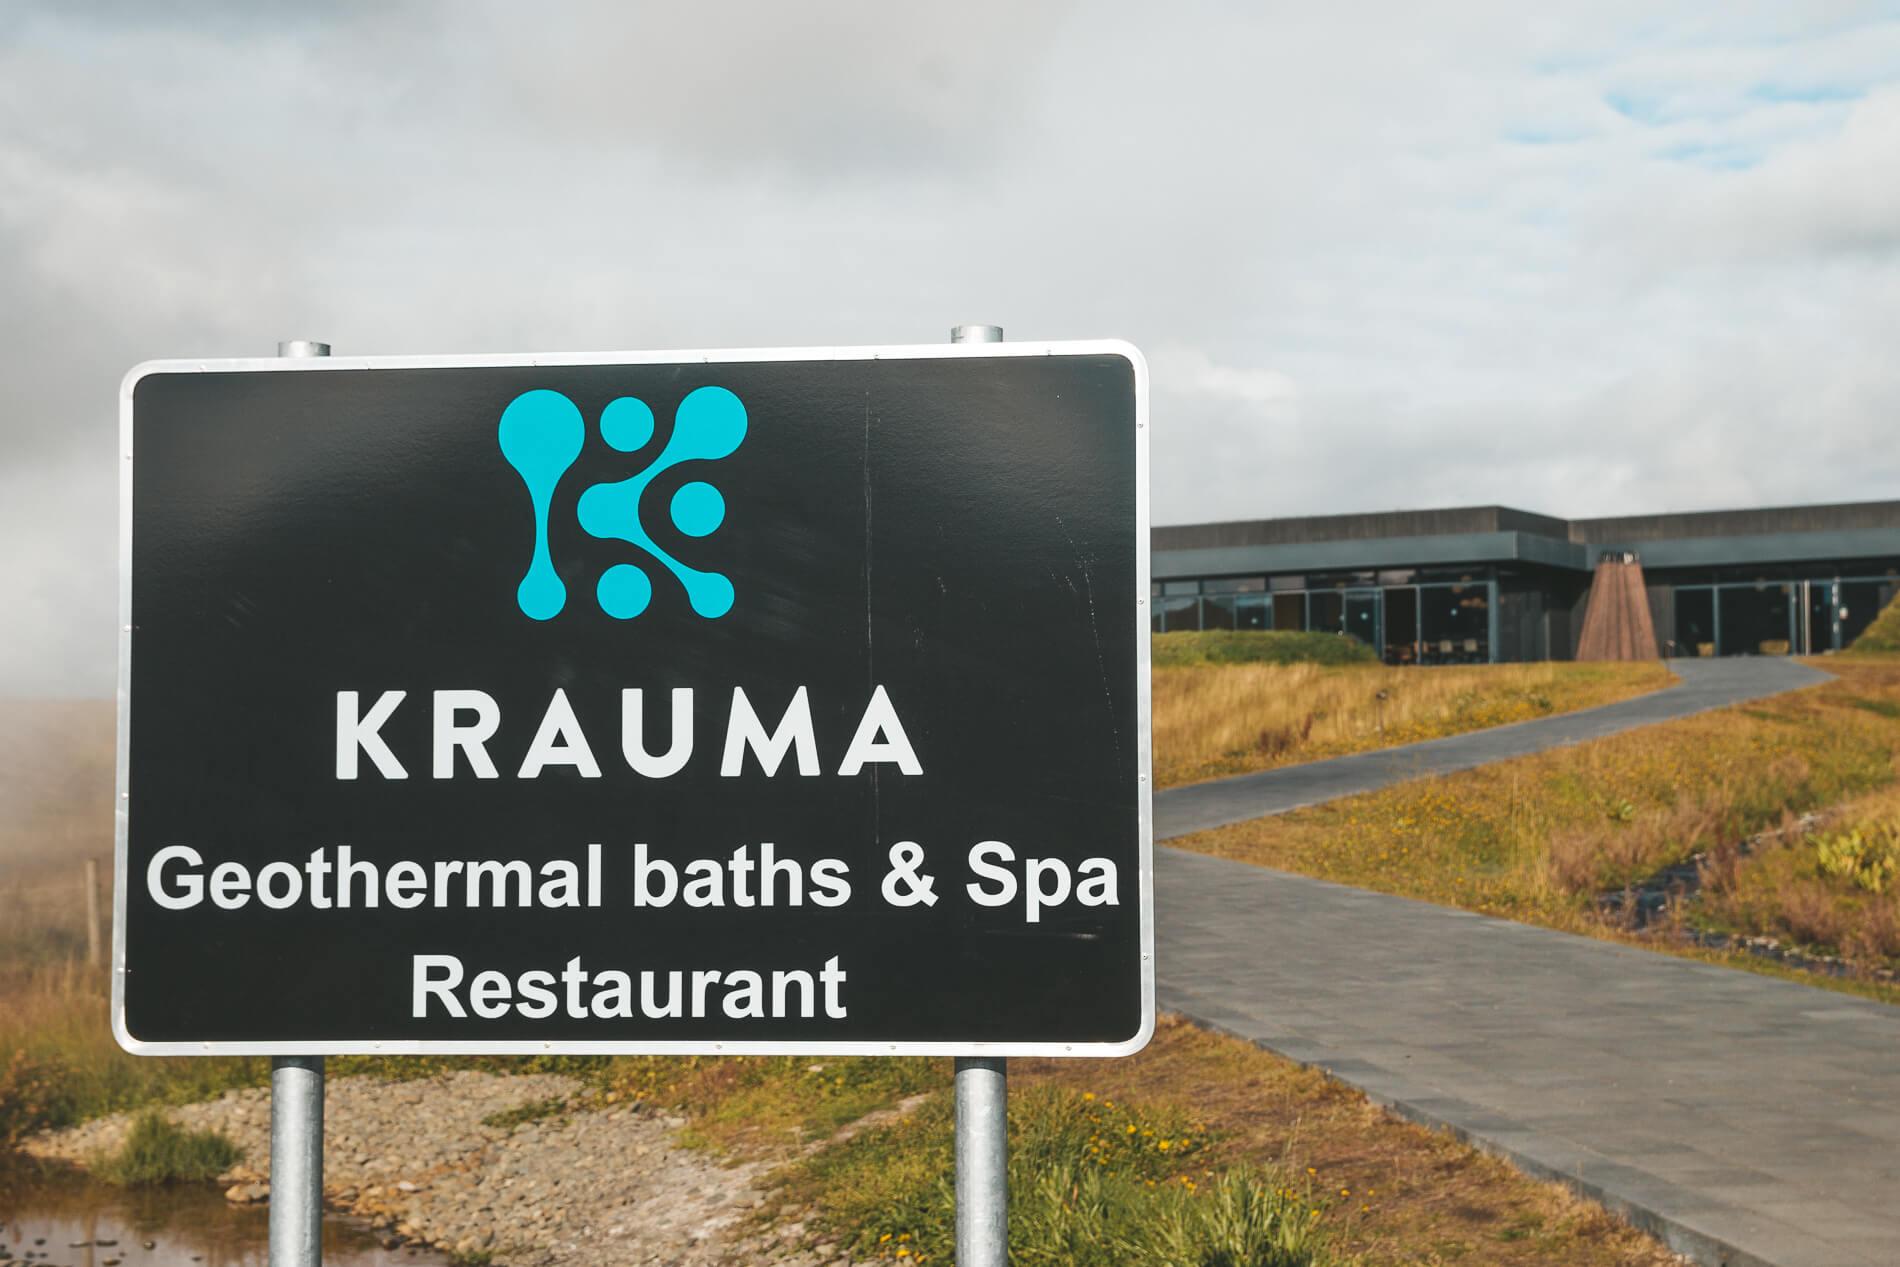 west iceland, iceland itinerary, off the beaten path iceland, krauma, iceland hot pools